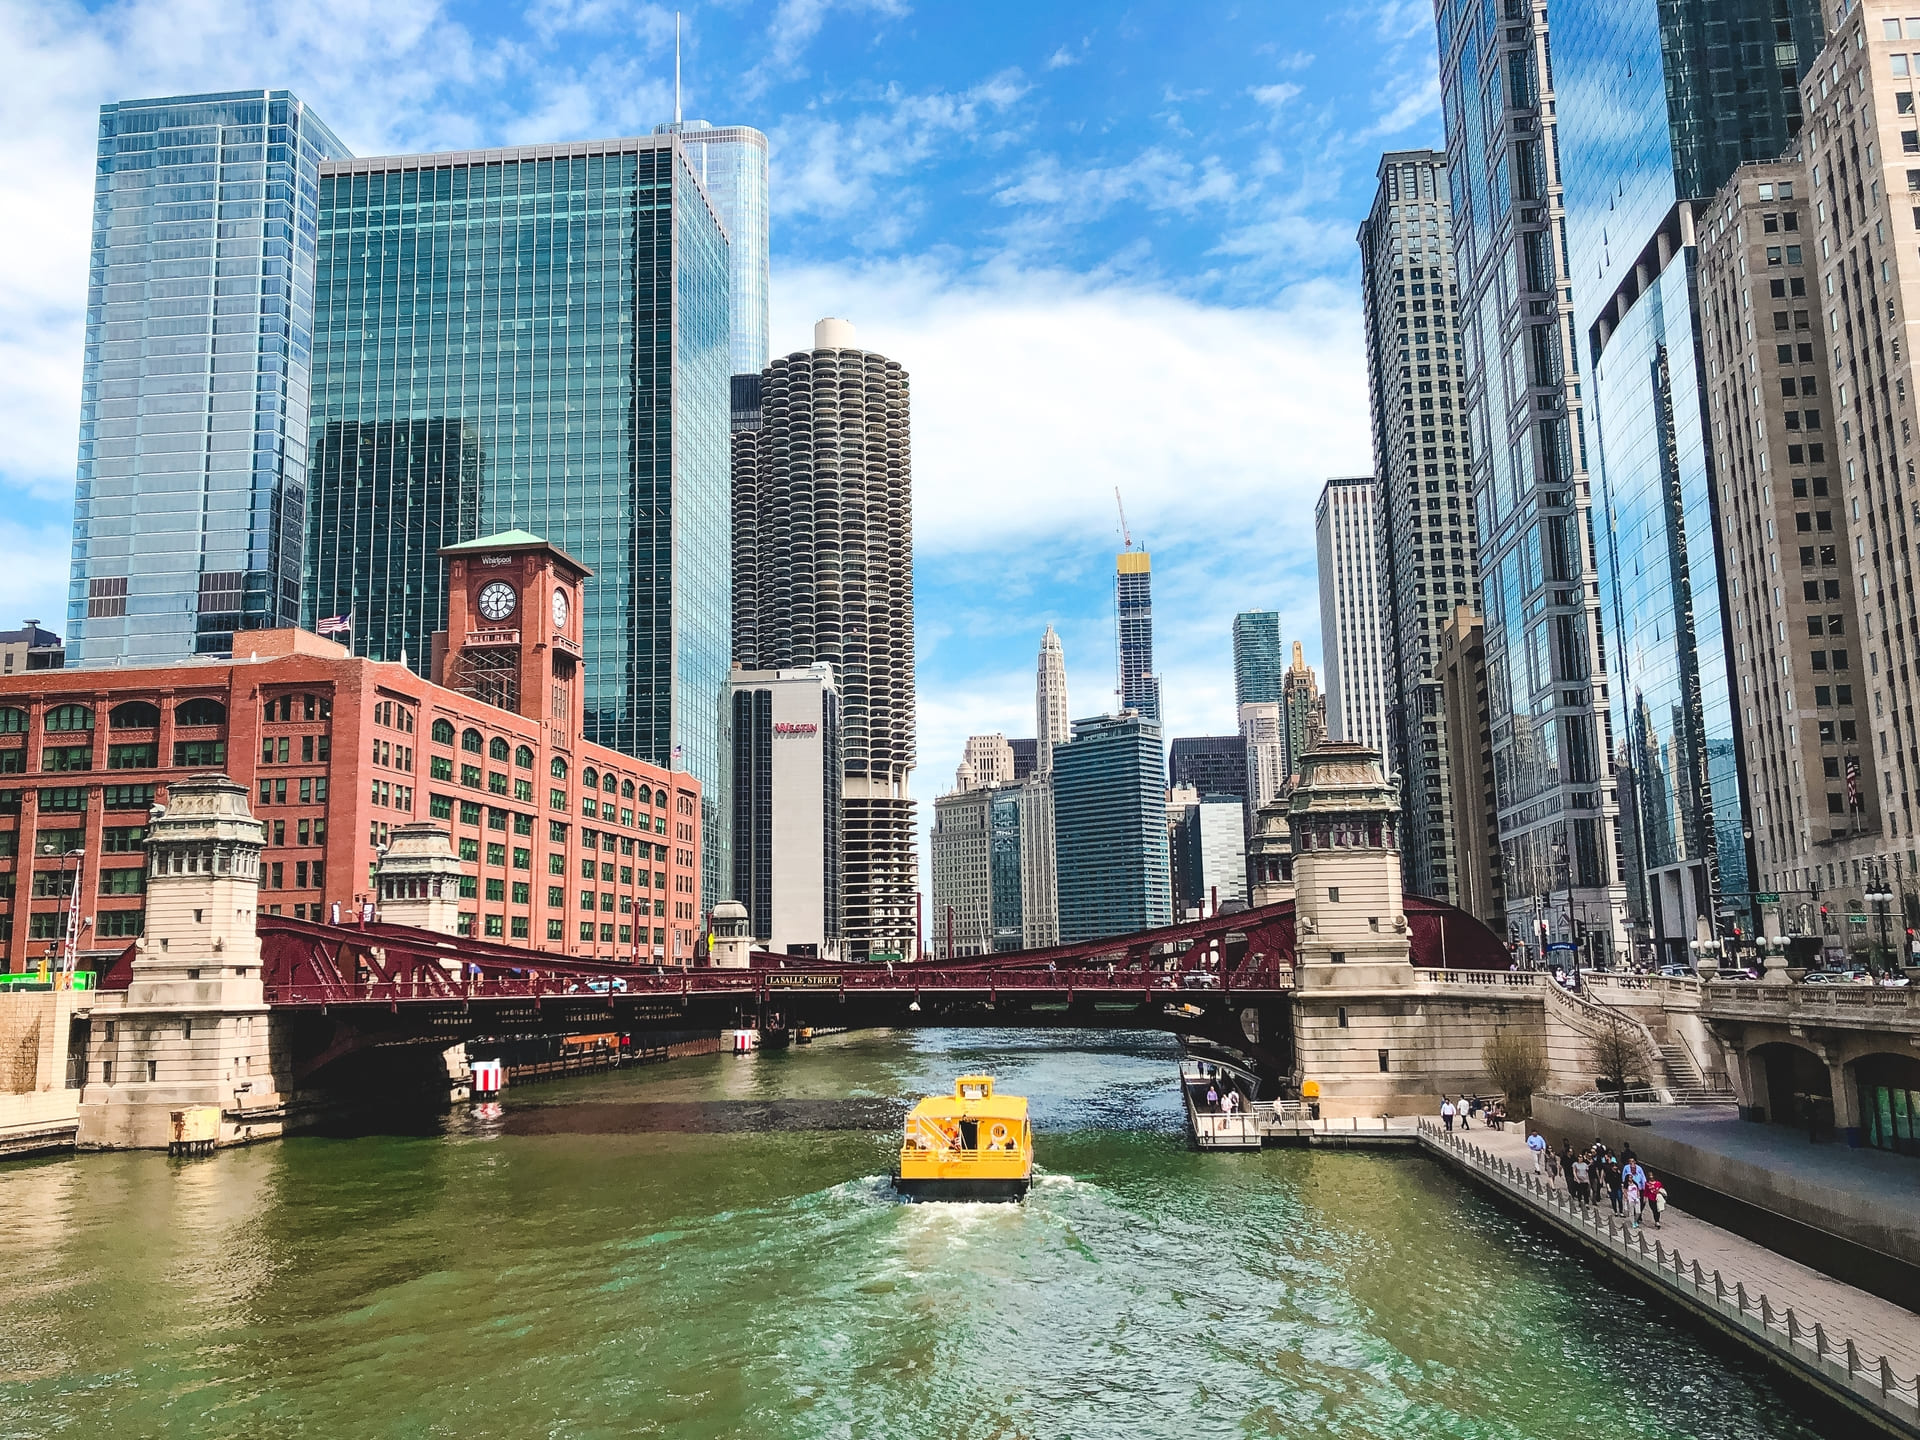 beautiful-wide-shot-chicago-river-with-amazing-modern-architecture